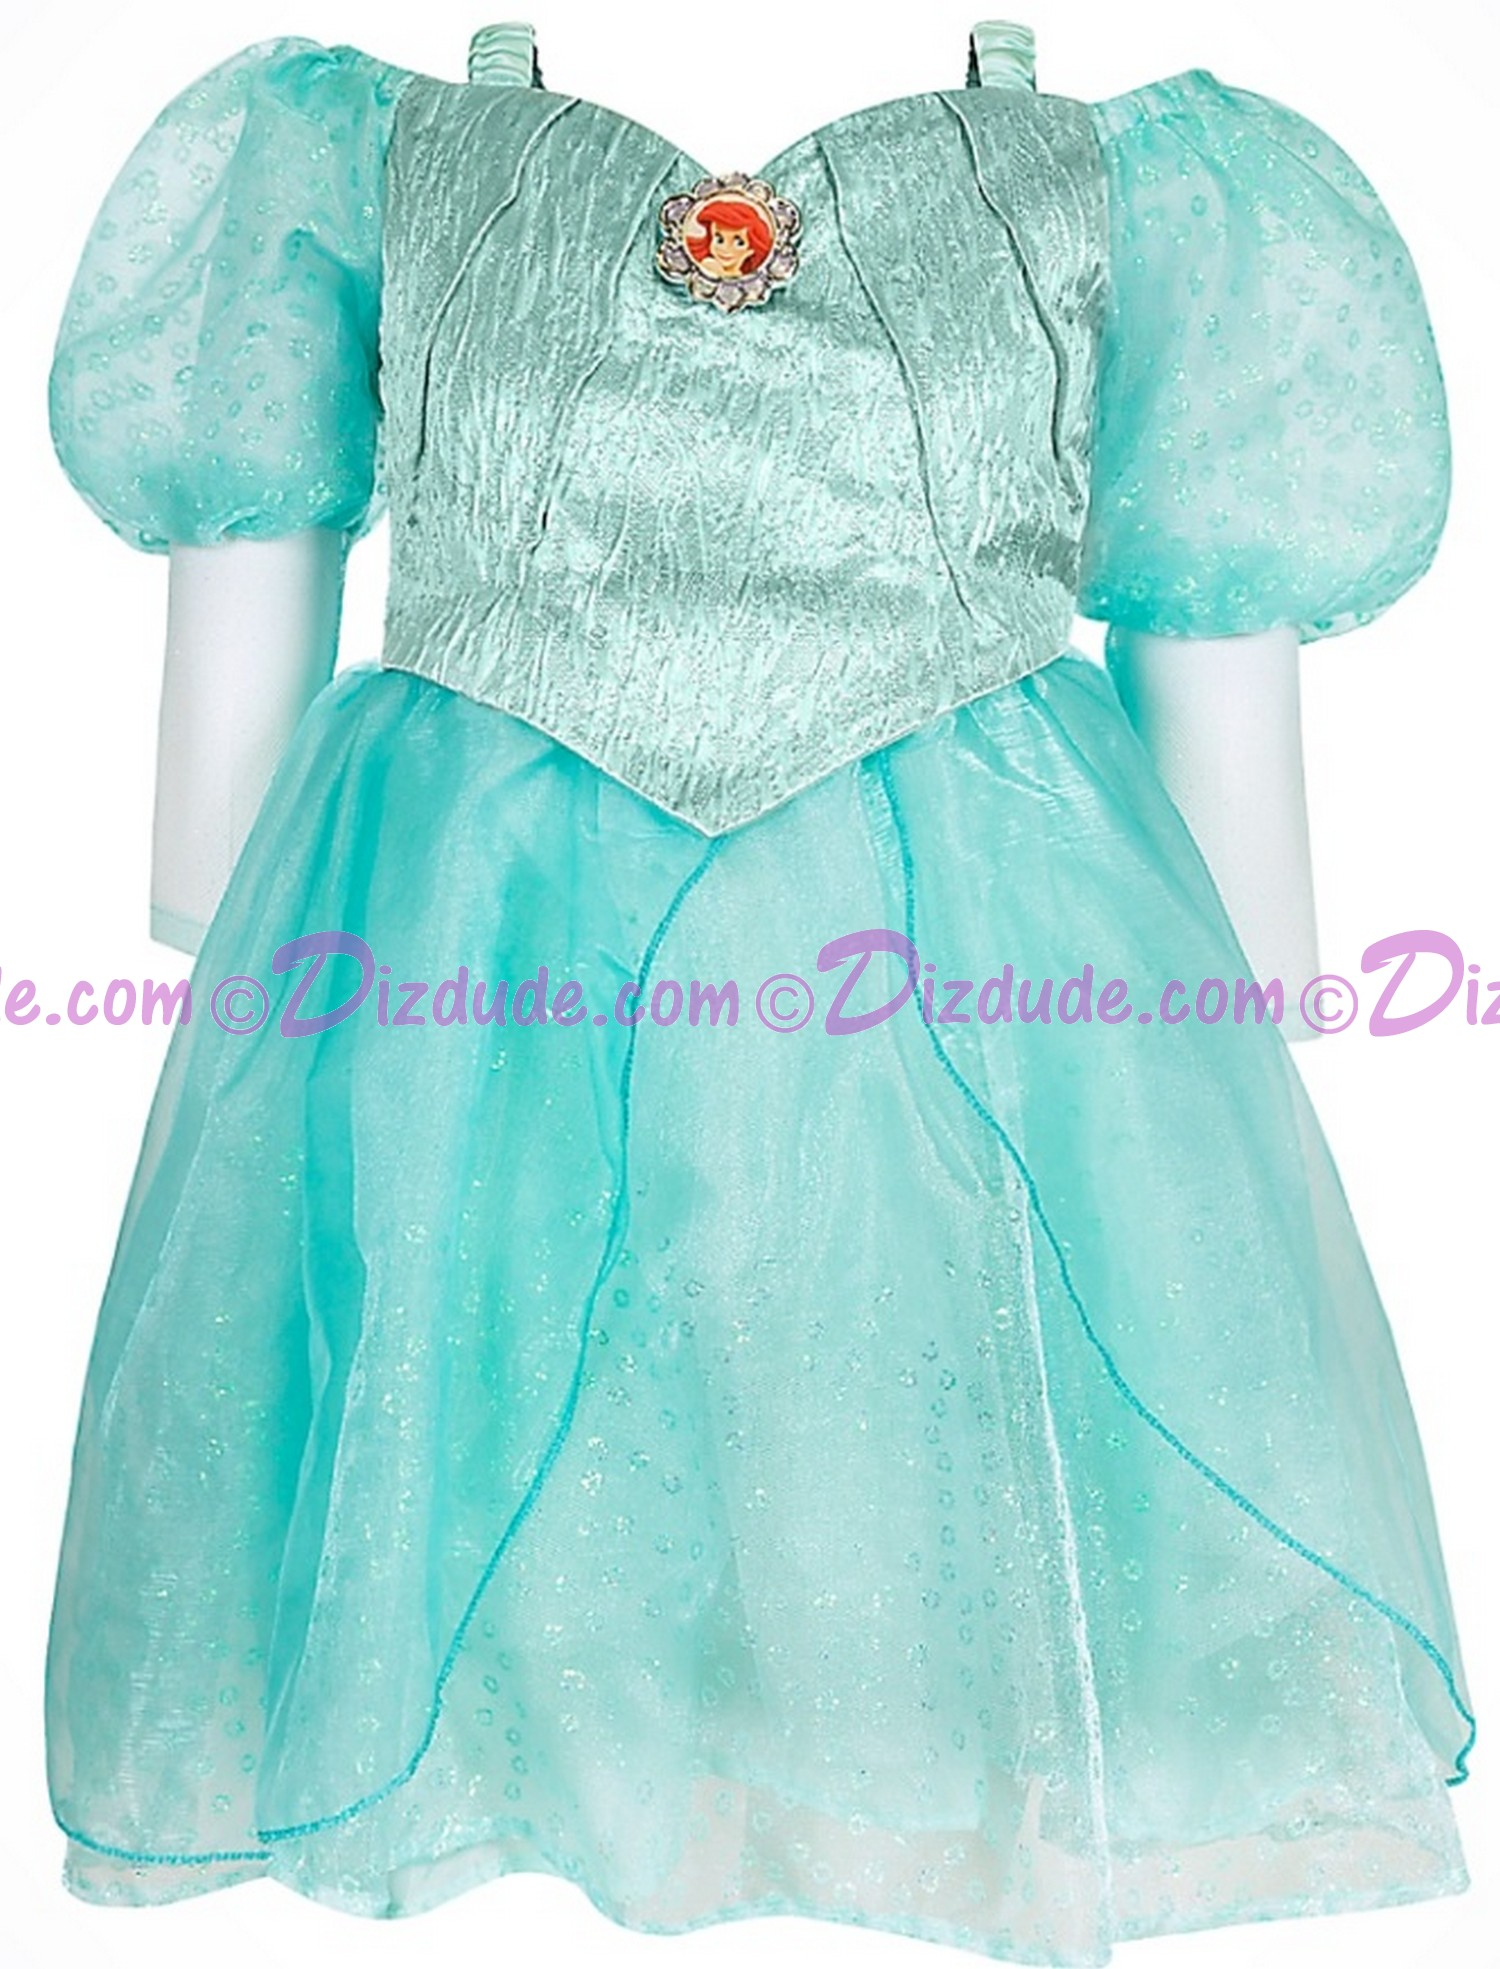 (SOLD OUT) Disney Theme Park Princess Ariel Dress